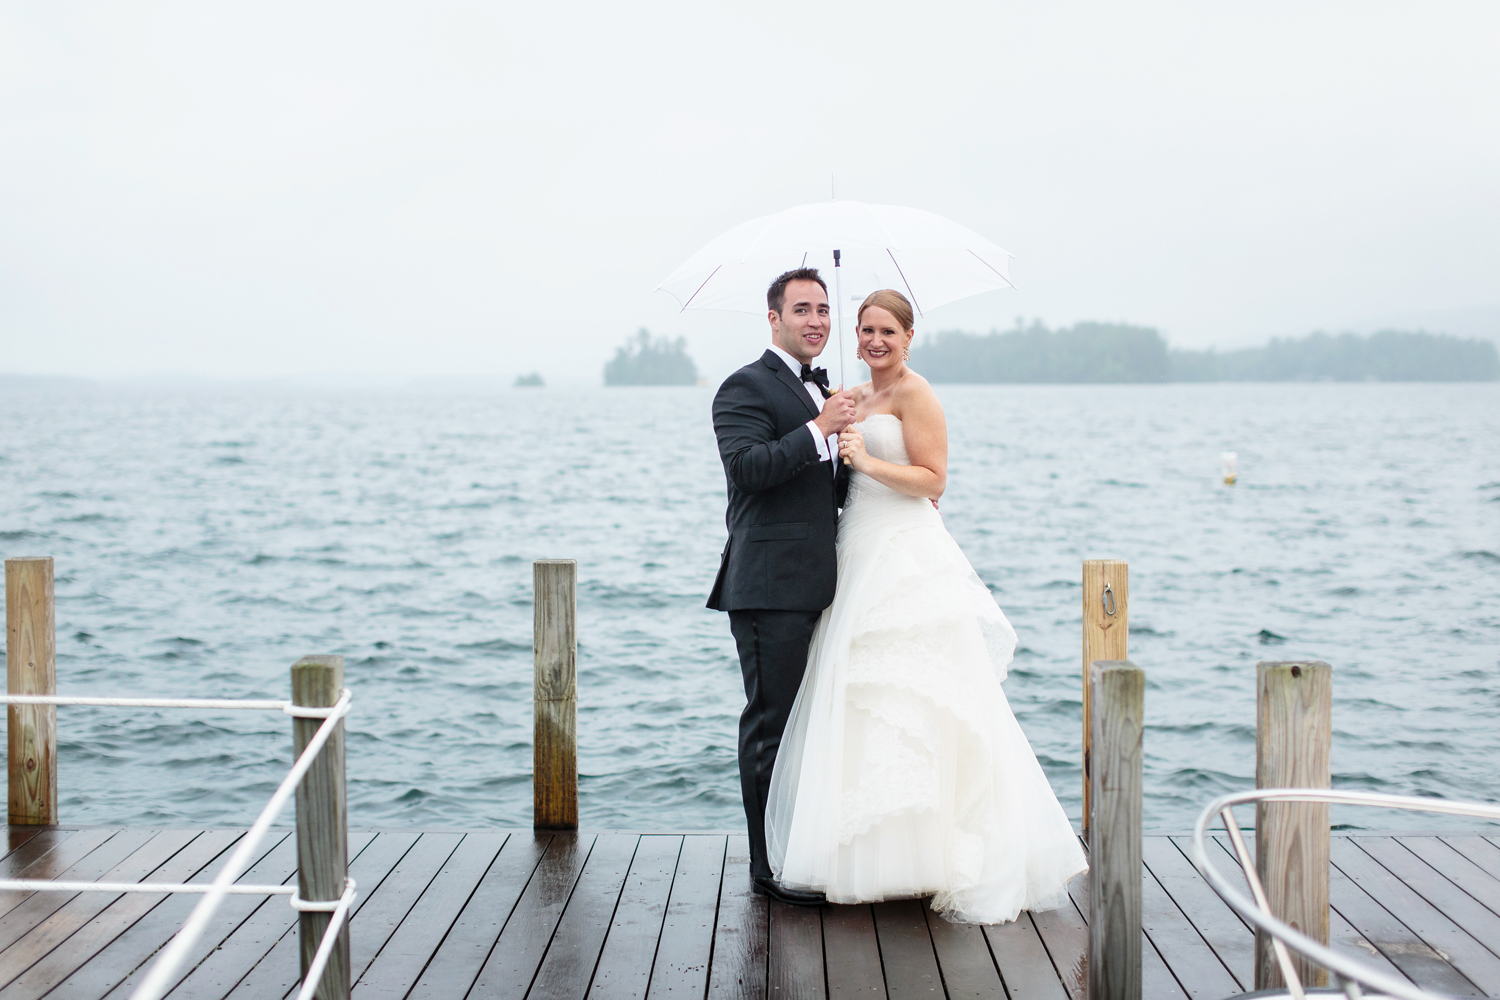 sagamore wedding photography41.jpg